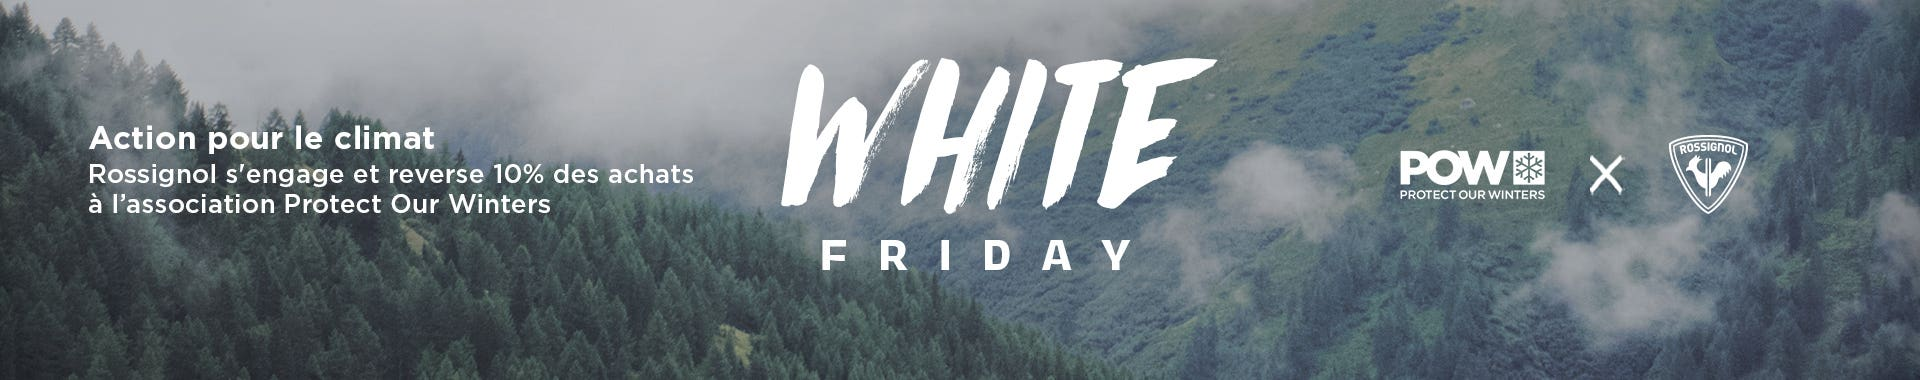 Offre White Friday